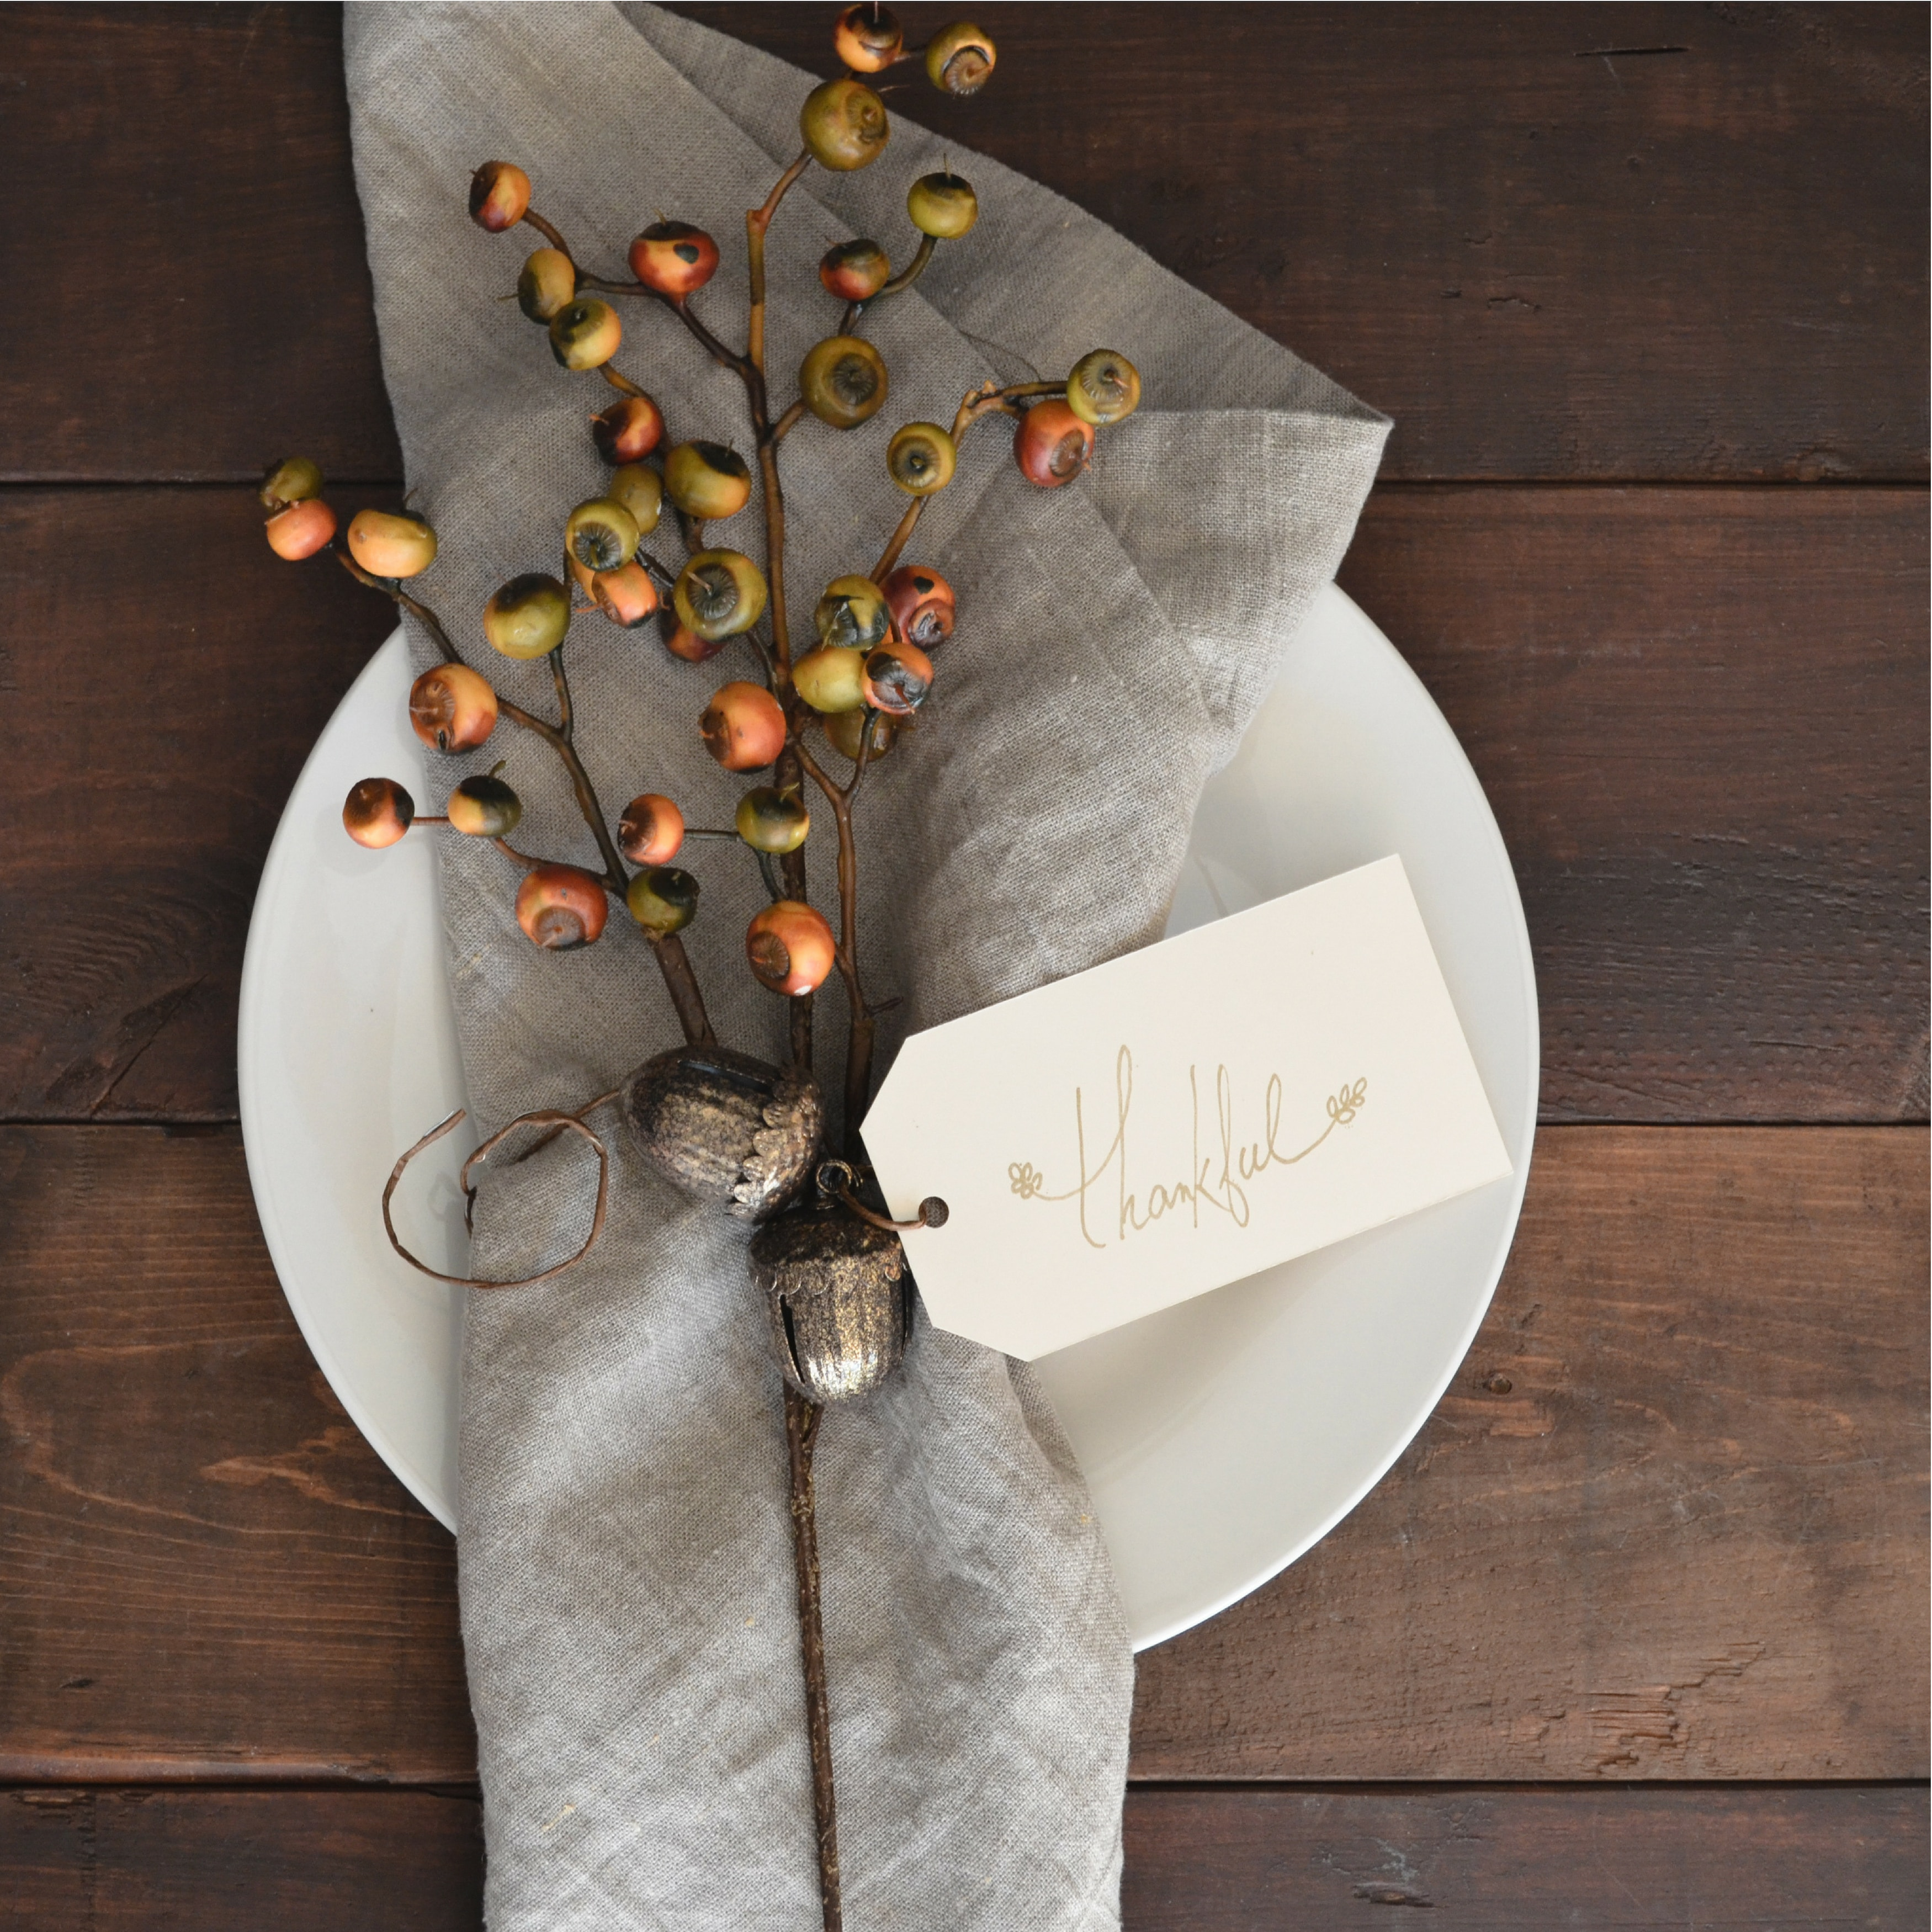 7 Things to Be Thankful for This Thanksgiving